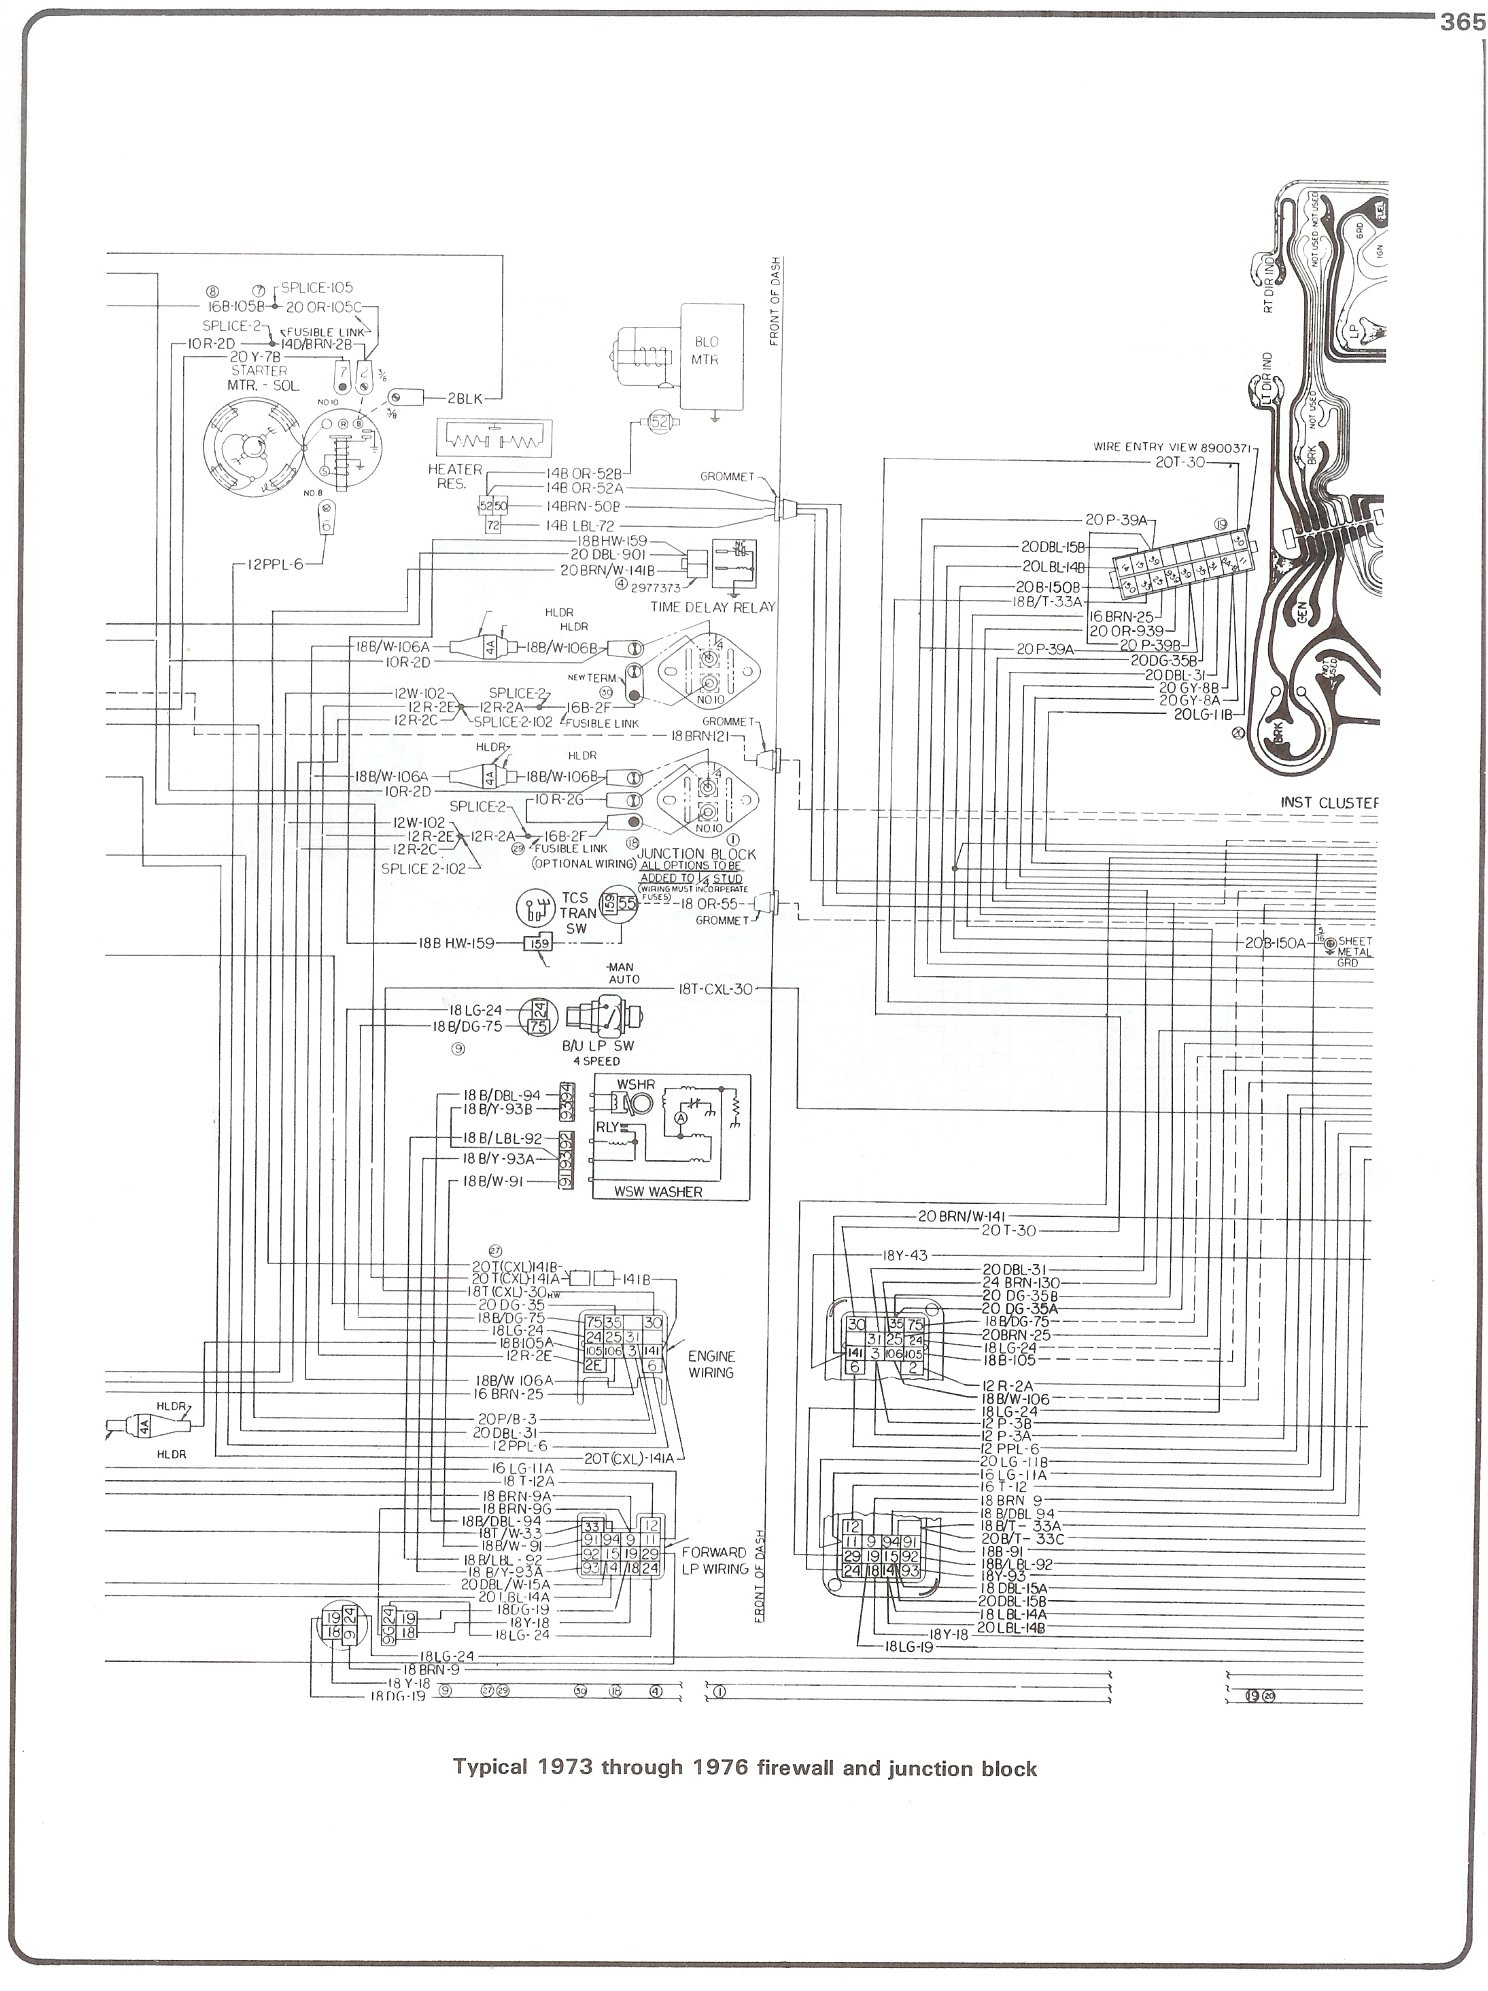 complete 73 87 wiring diagrams S10 Fuse Diagram  Bobcat Fuse Diagram 2003 Envoy Fuse Diagram Chevy Fuse Block Diagram